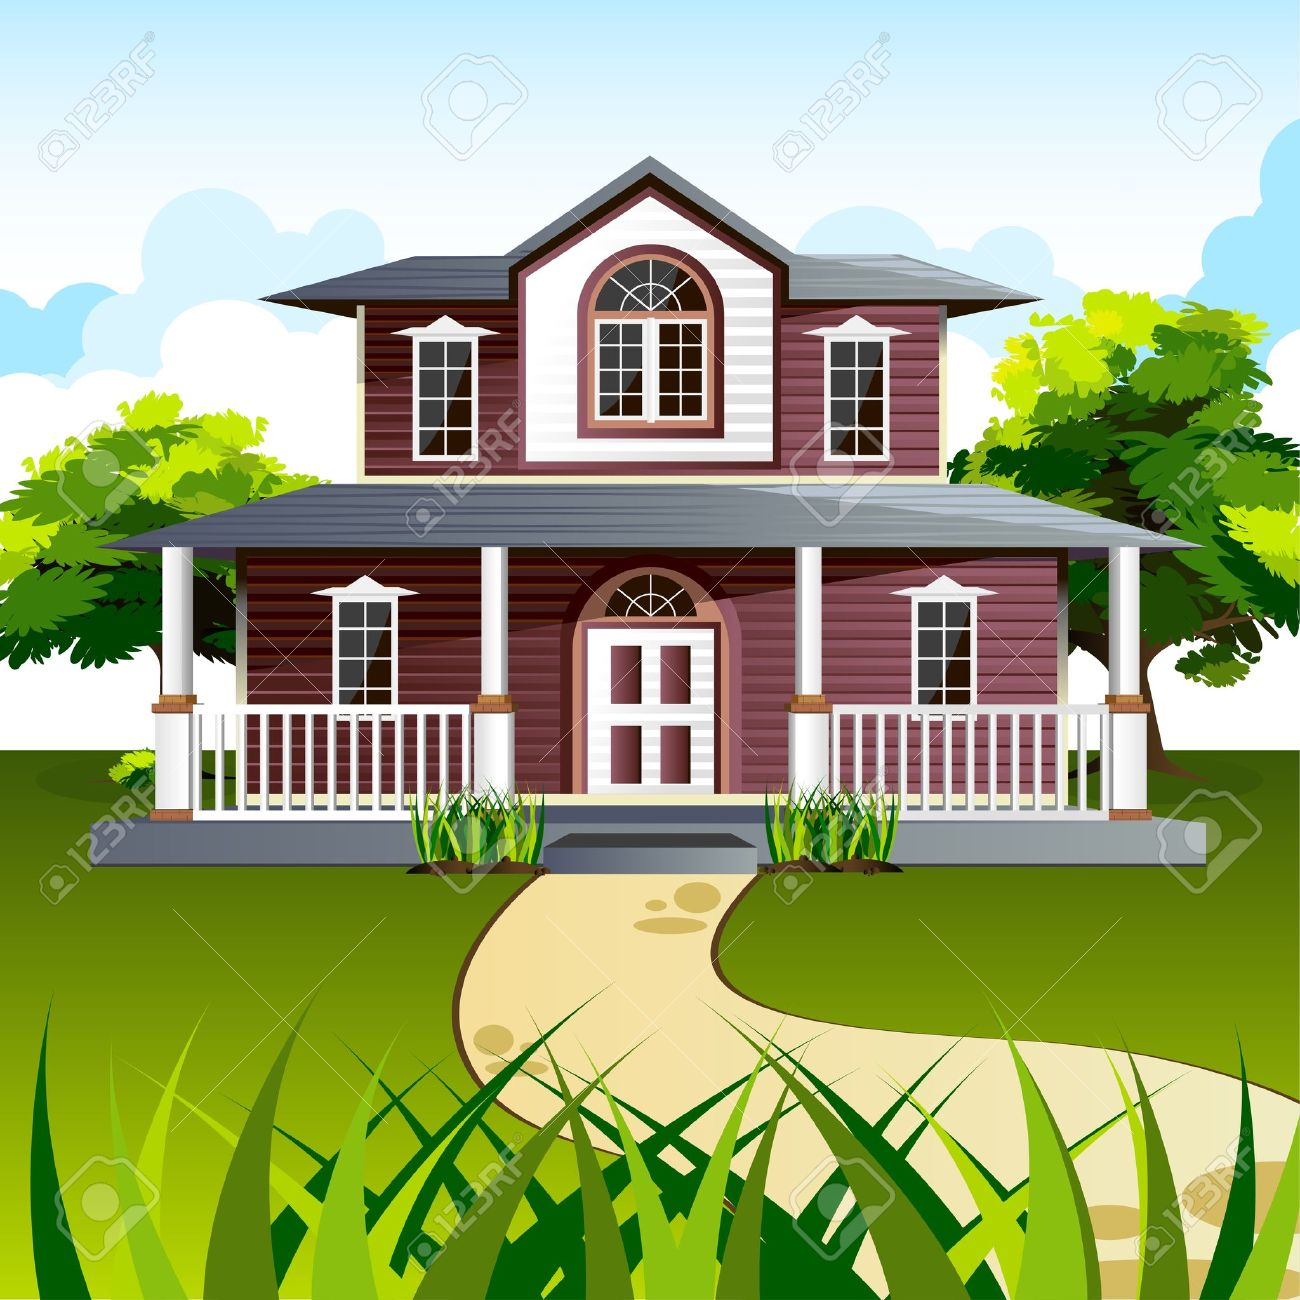 Exterior house clipart.